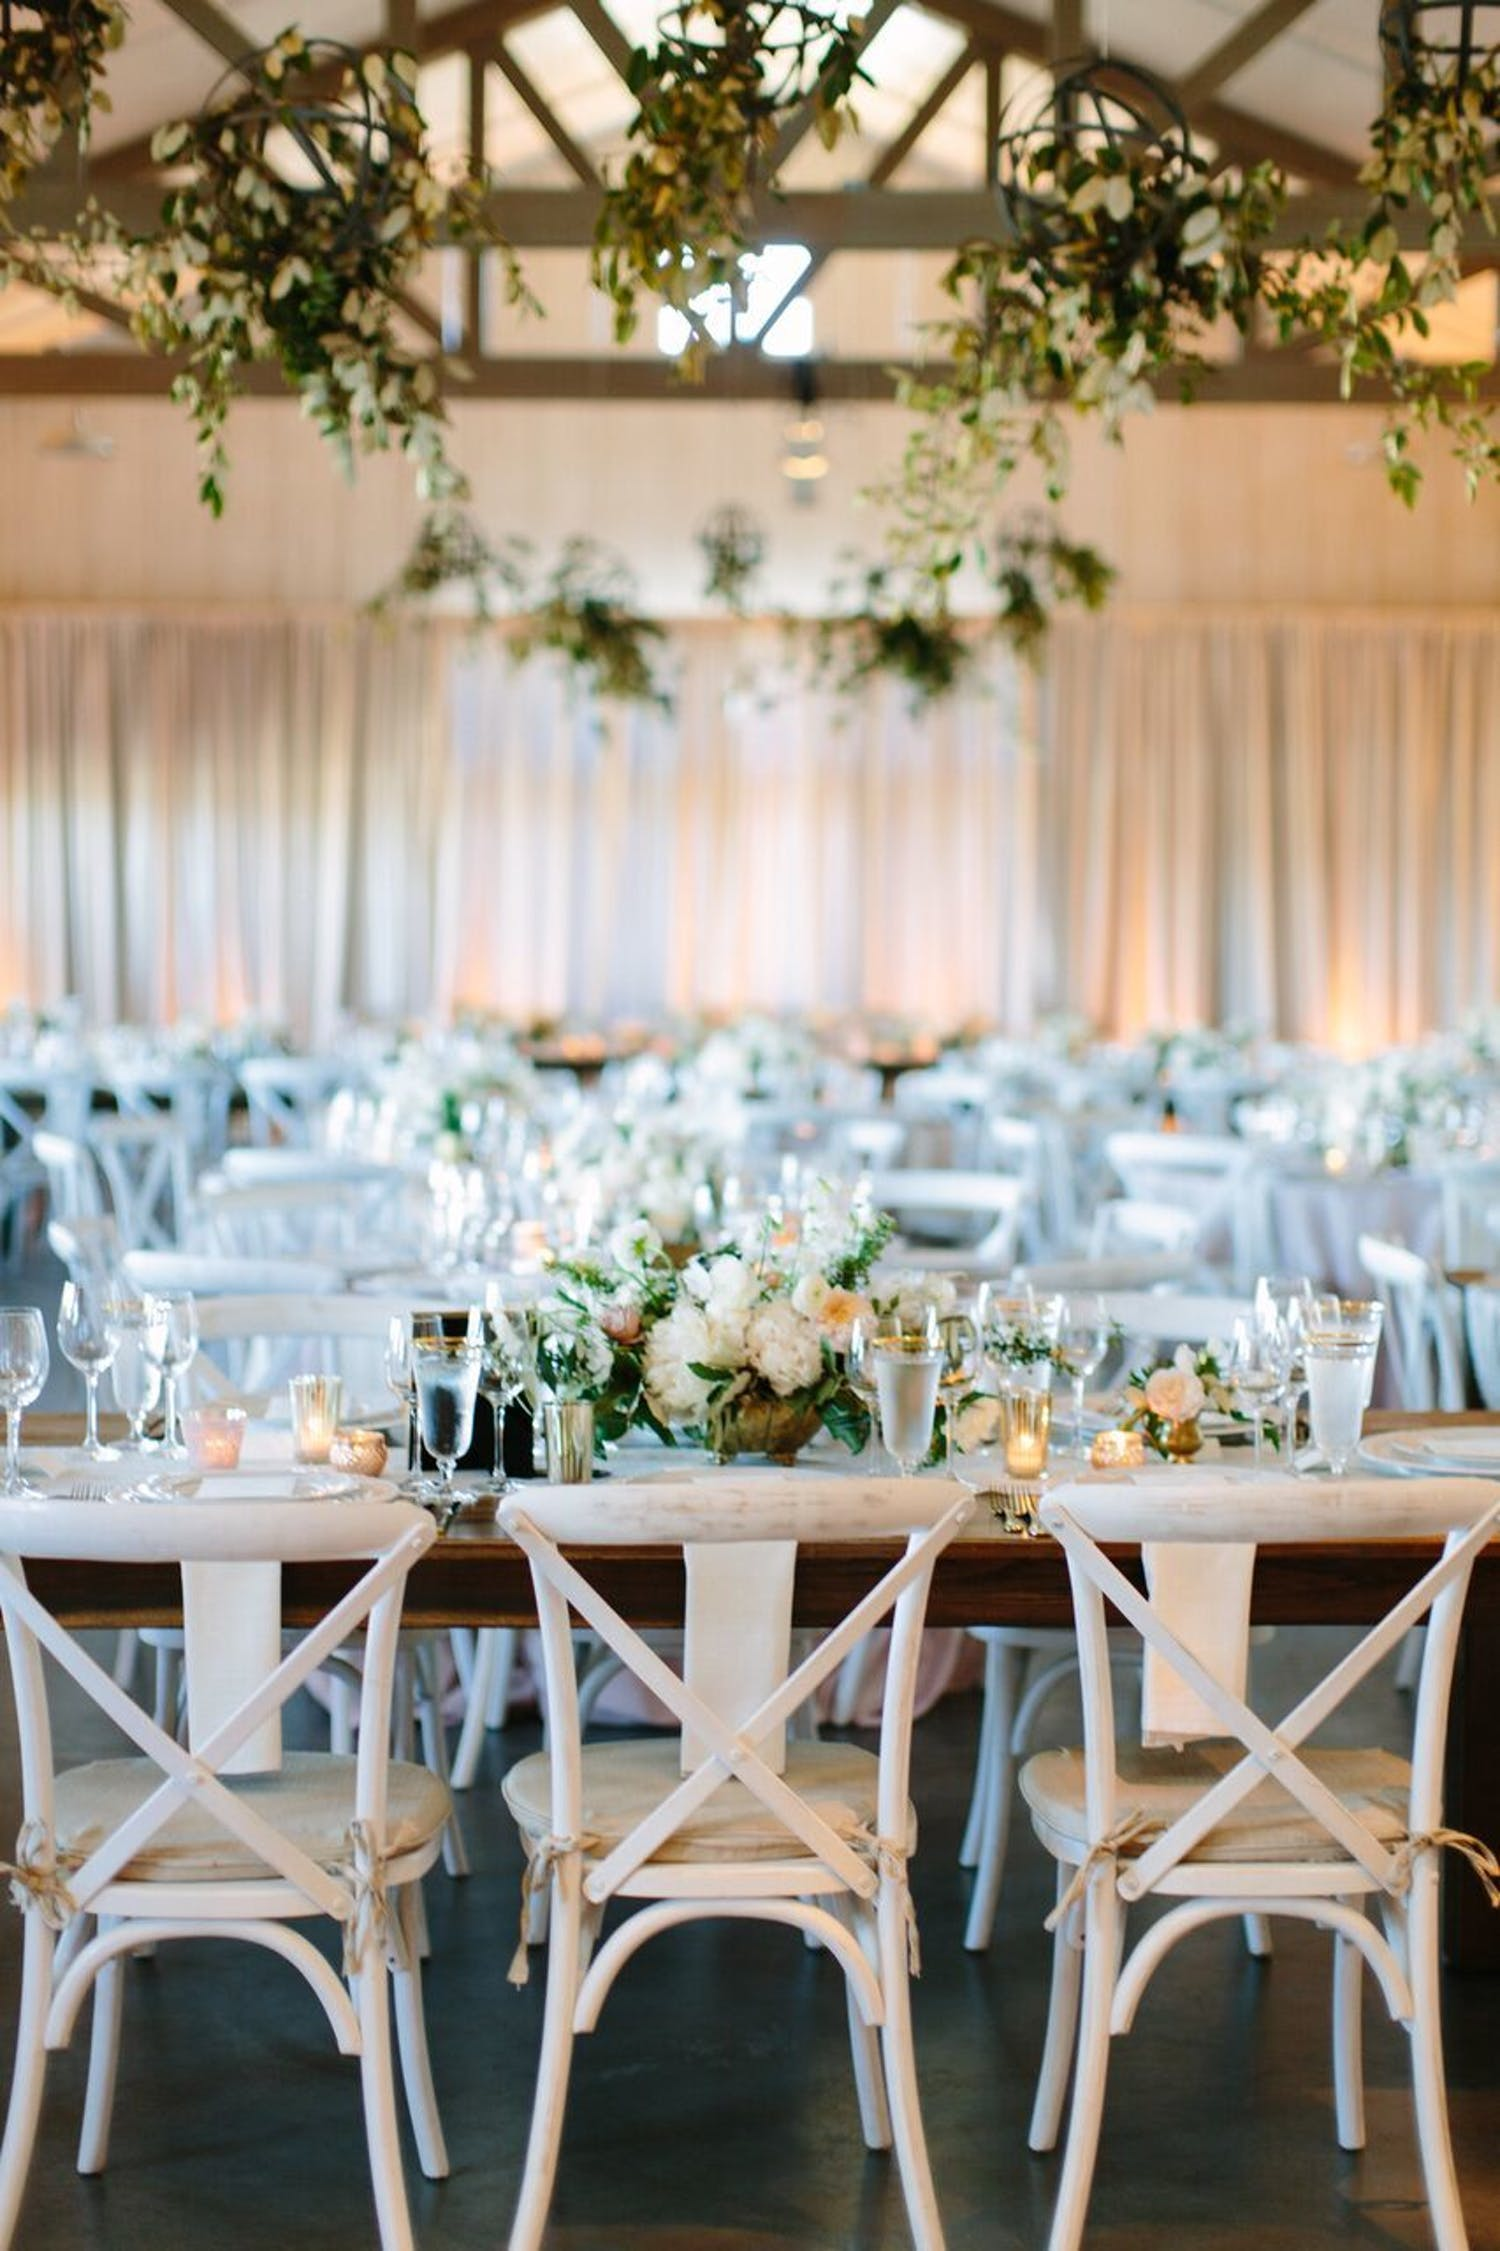 Sonoma Winery Wedding Venue Decorated in Greenery for Wedding Planned by Every Elegant Detail   PartySlate